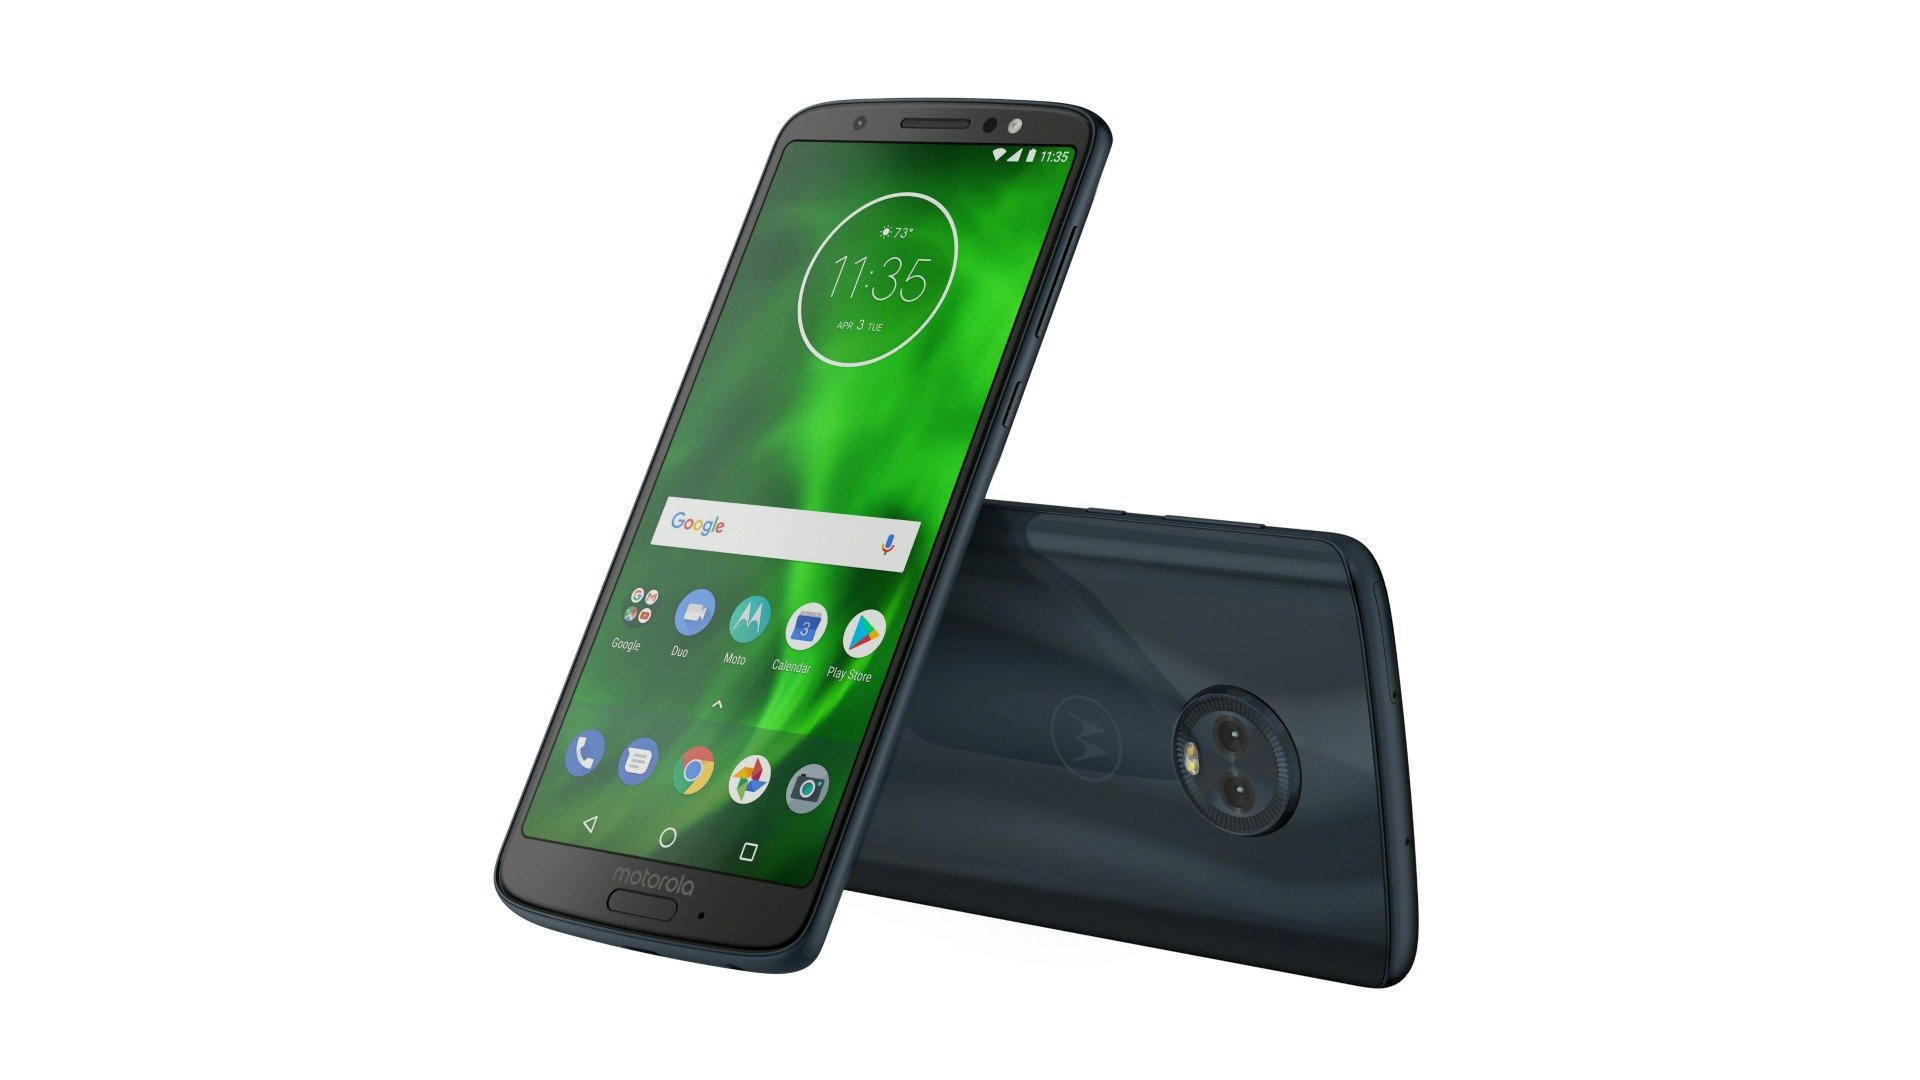 Upcoming Moto Z3 Play Leaks Ahead of Launch